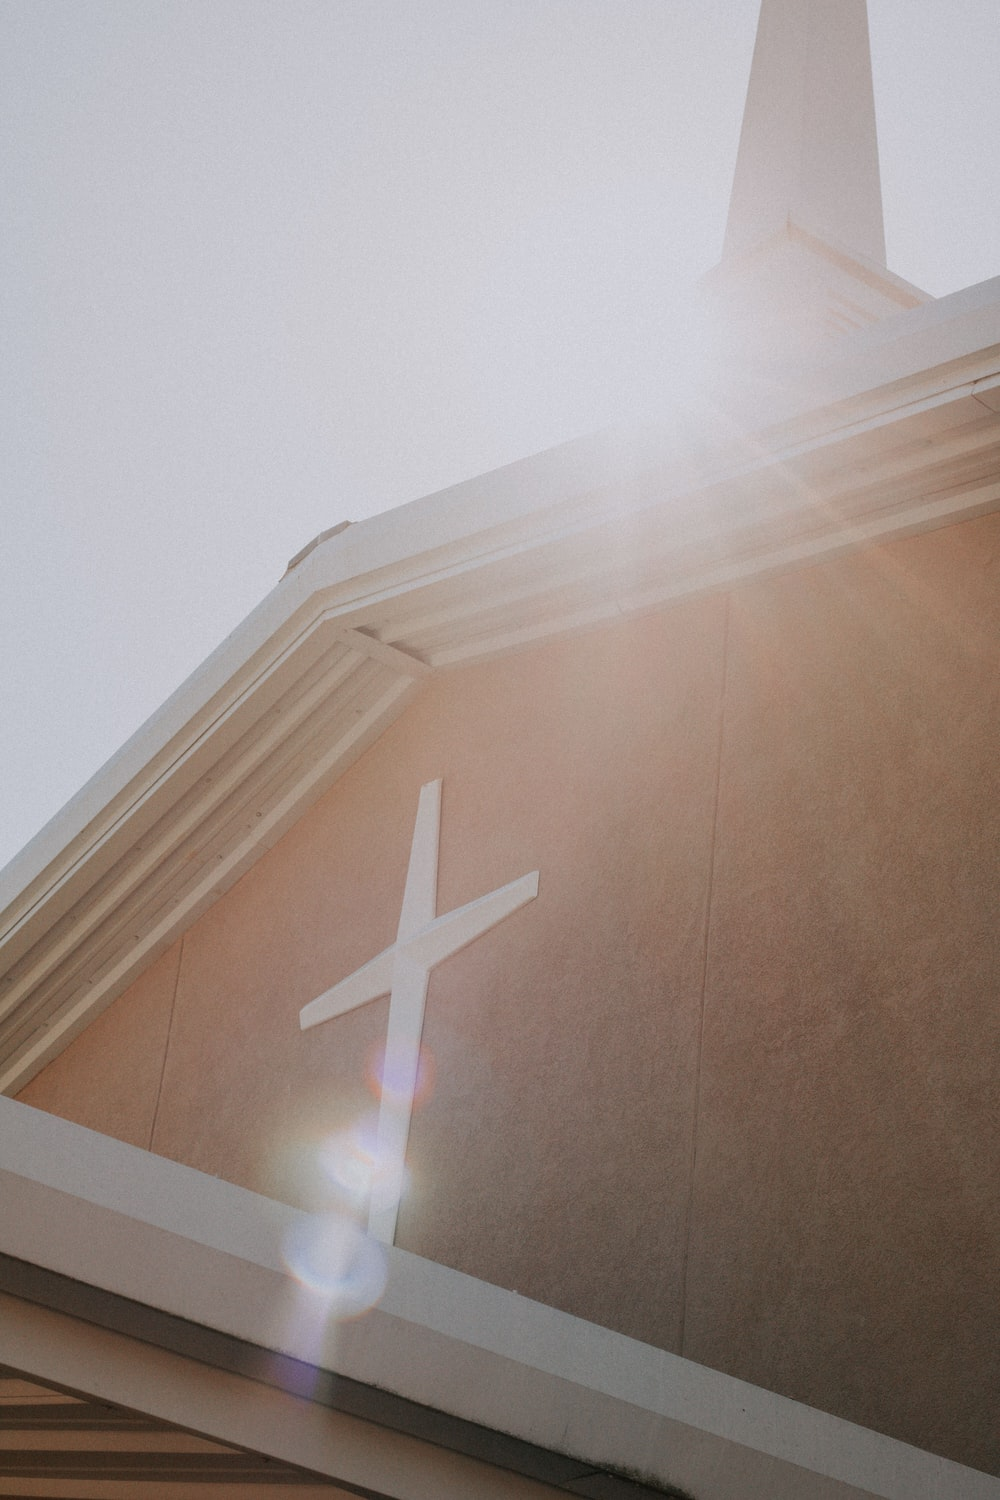 white cross on brown wall